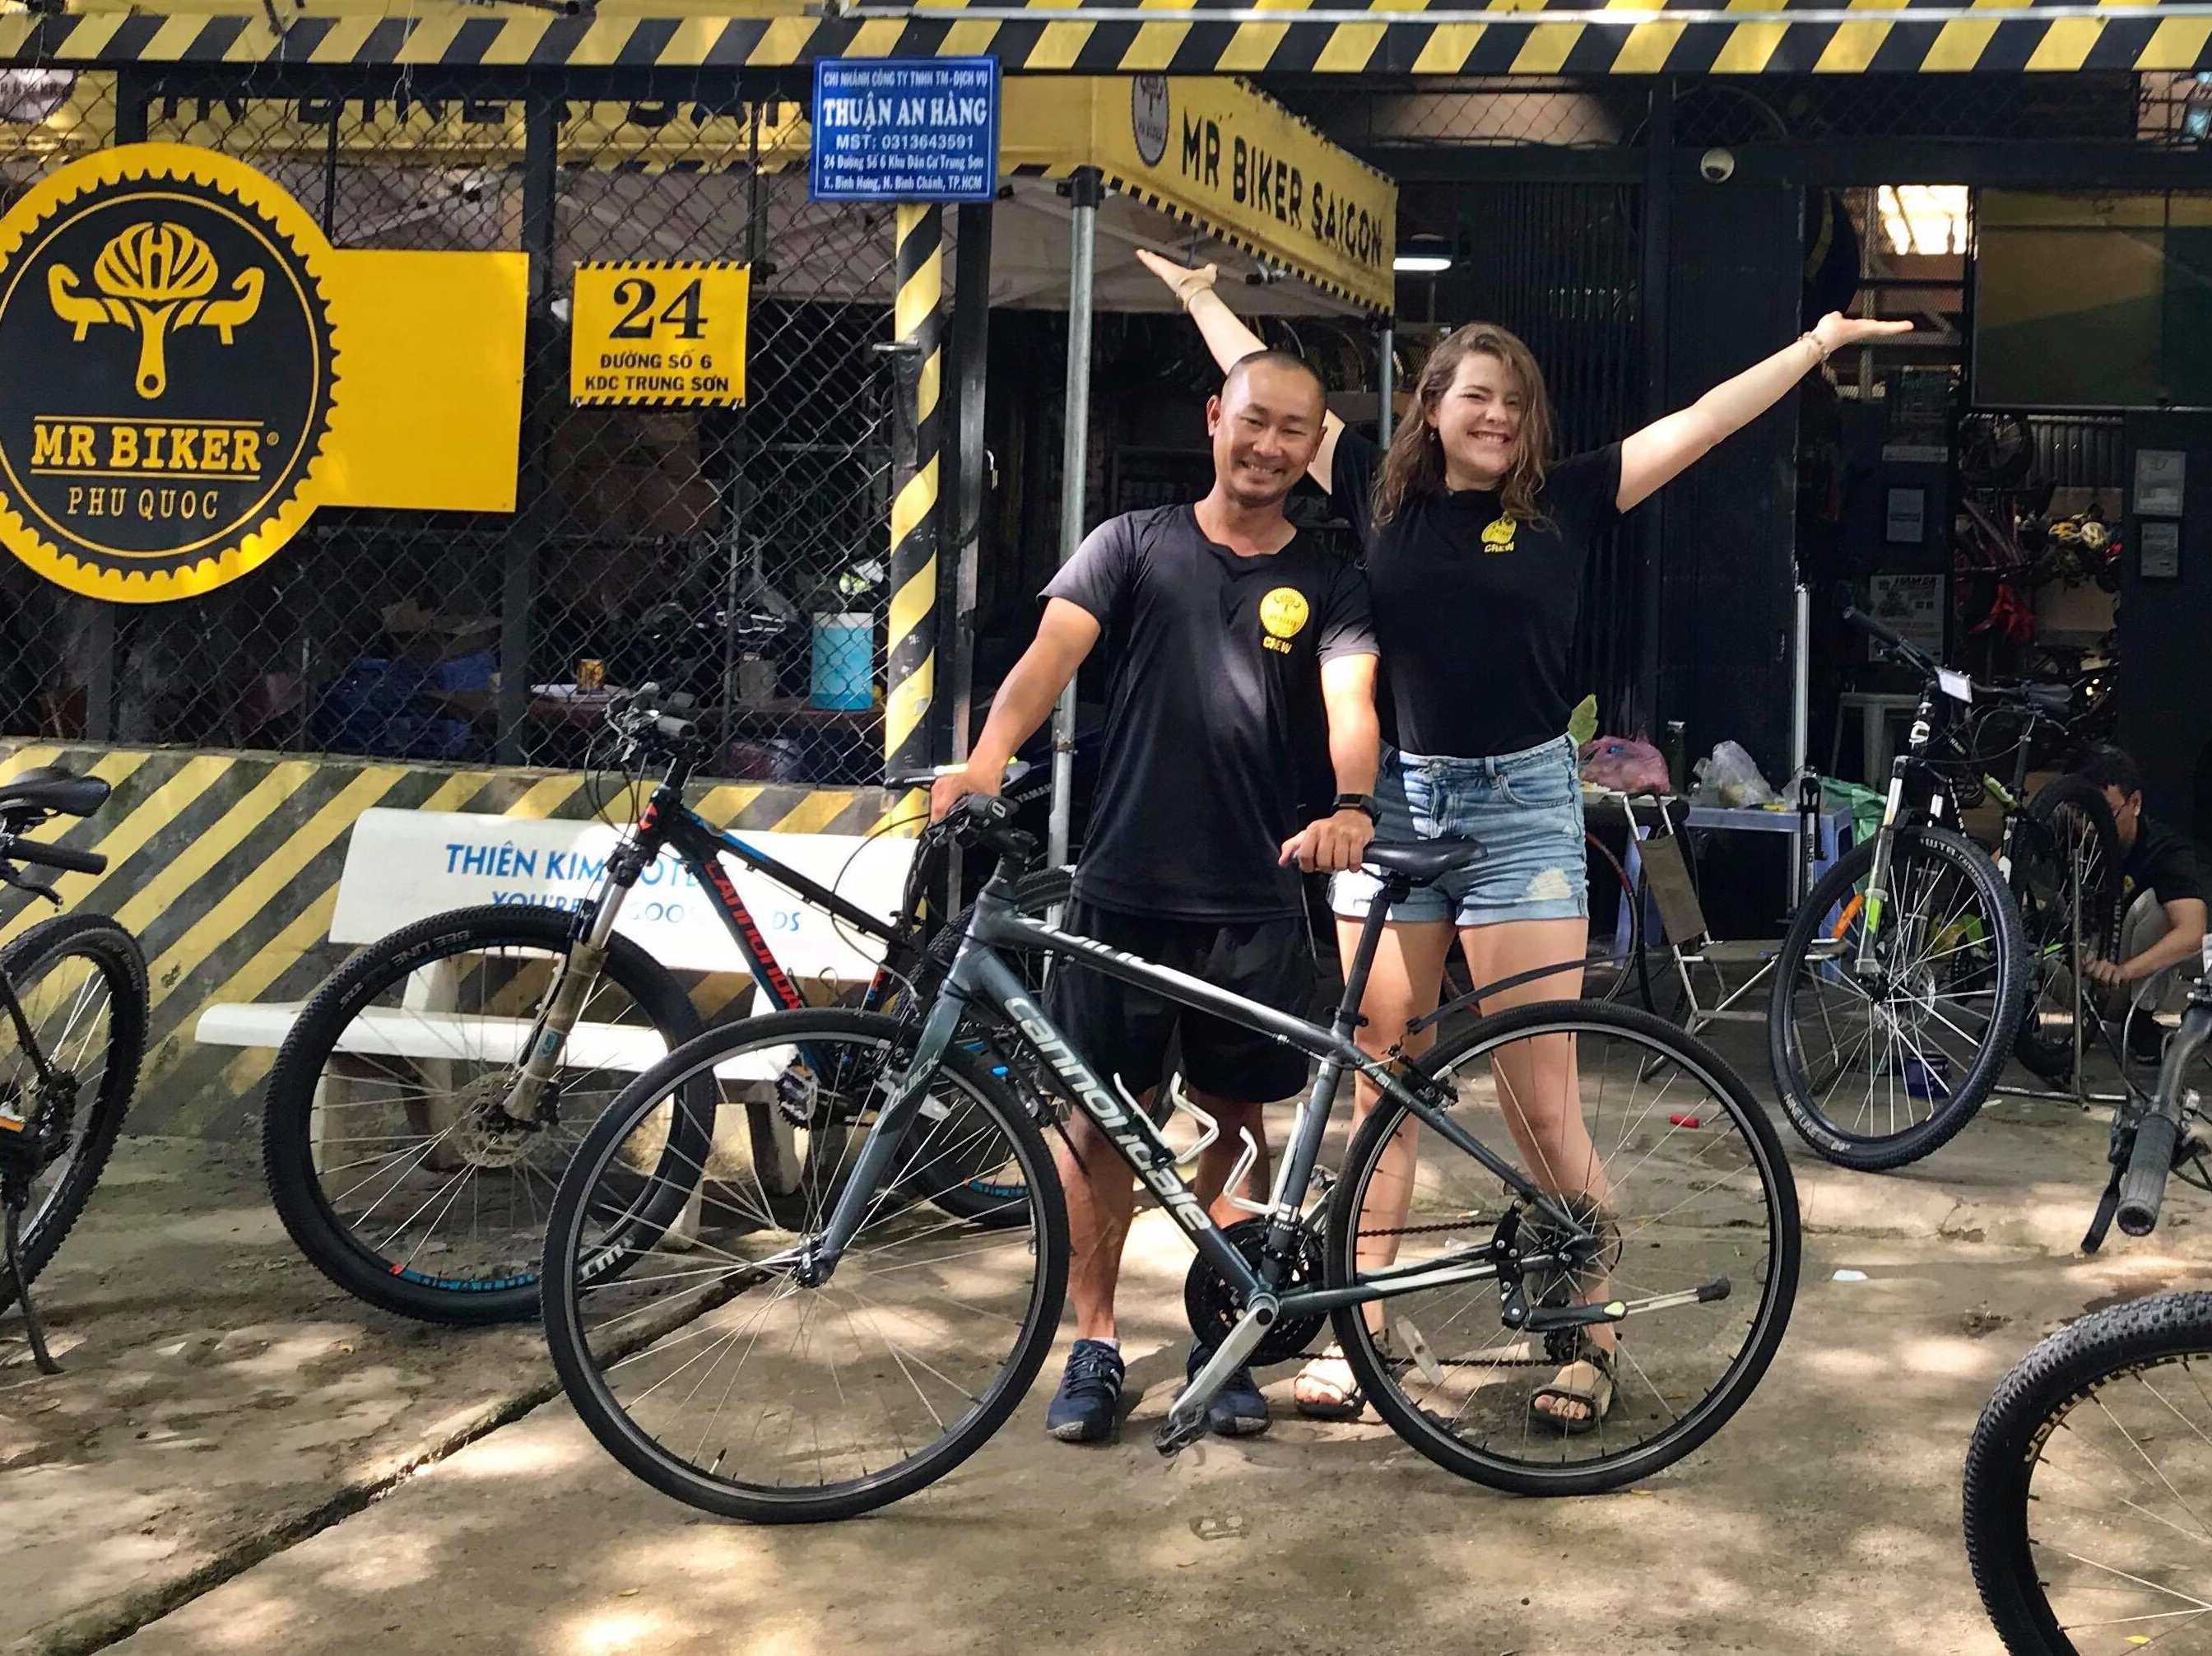 Lithuanian tourist speechless as bike stolen twice in less than 2 yrs in Ho Chi Minh City